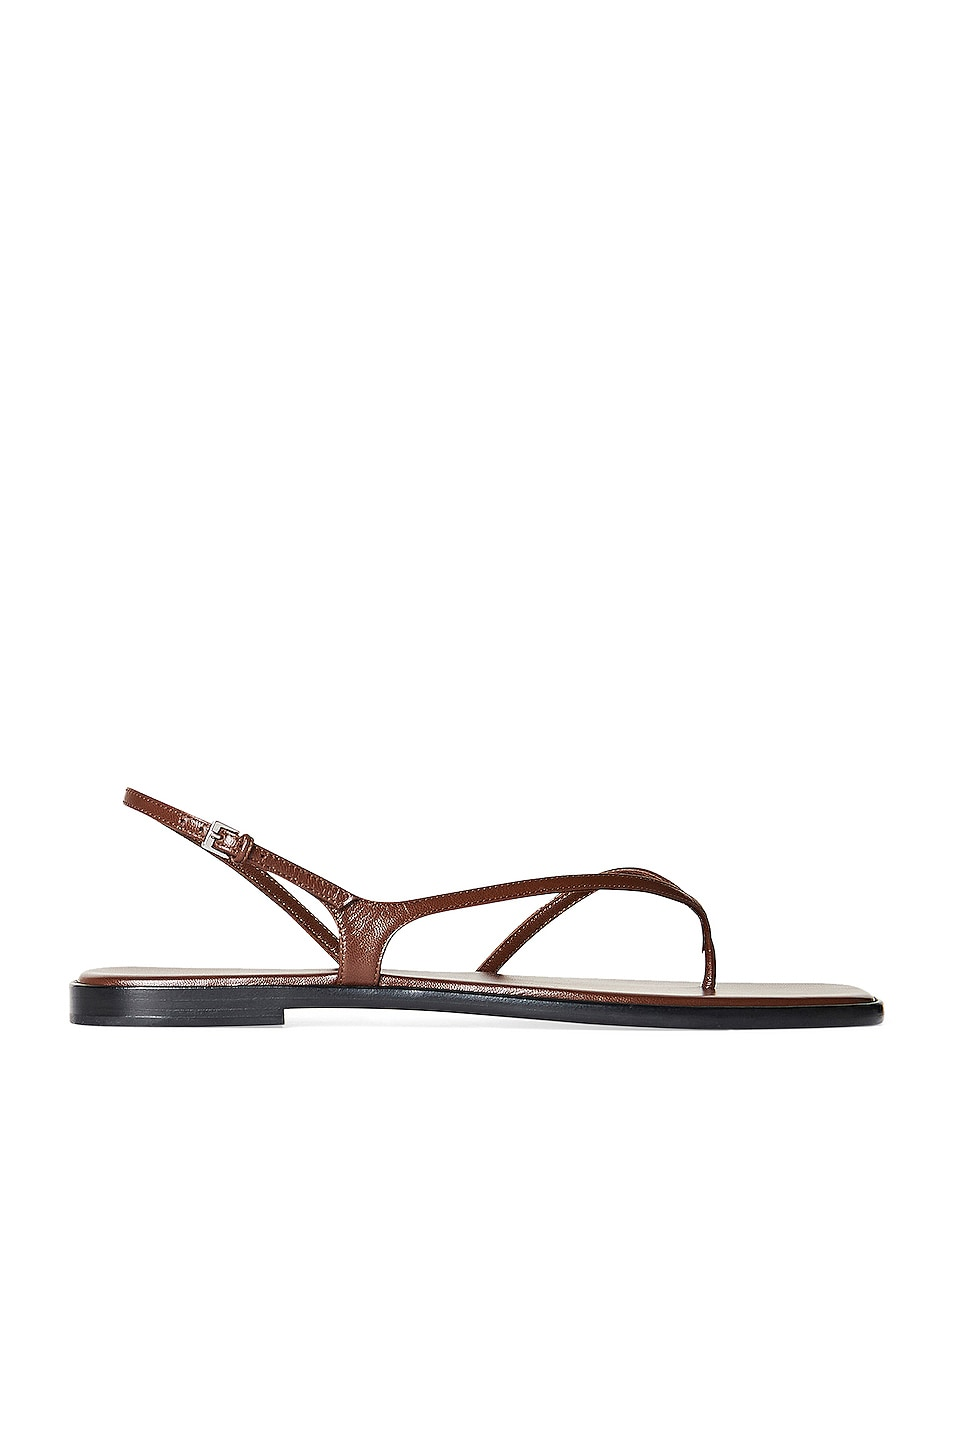 Image 1 of The Row Constance Leather Flat Sandals in Walnut